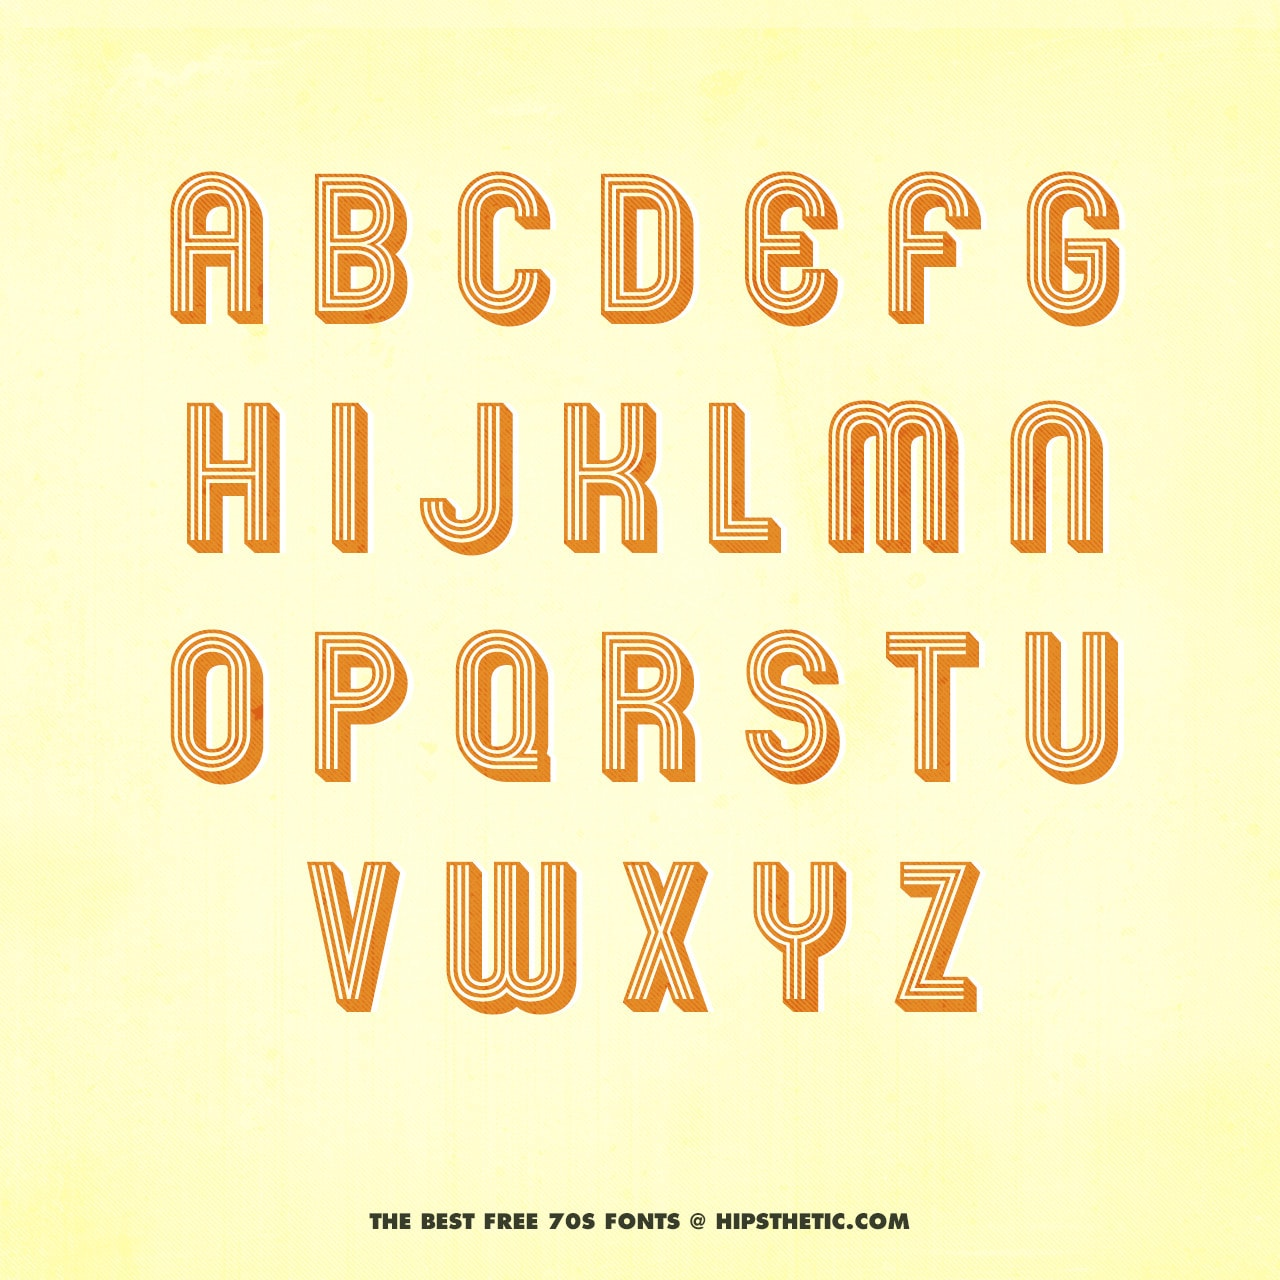 The 12+ Best Free 70s Fonts - Hipsthetic